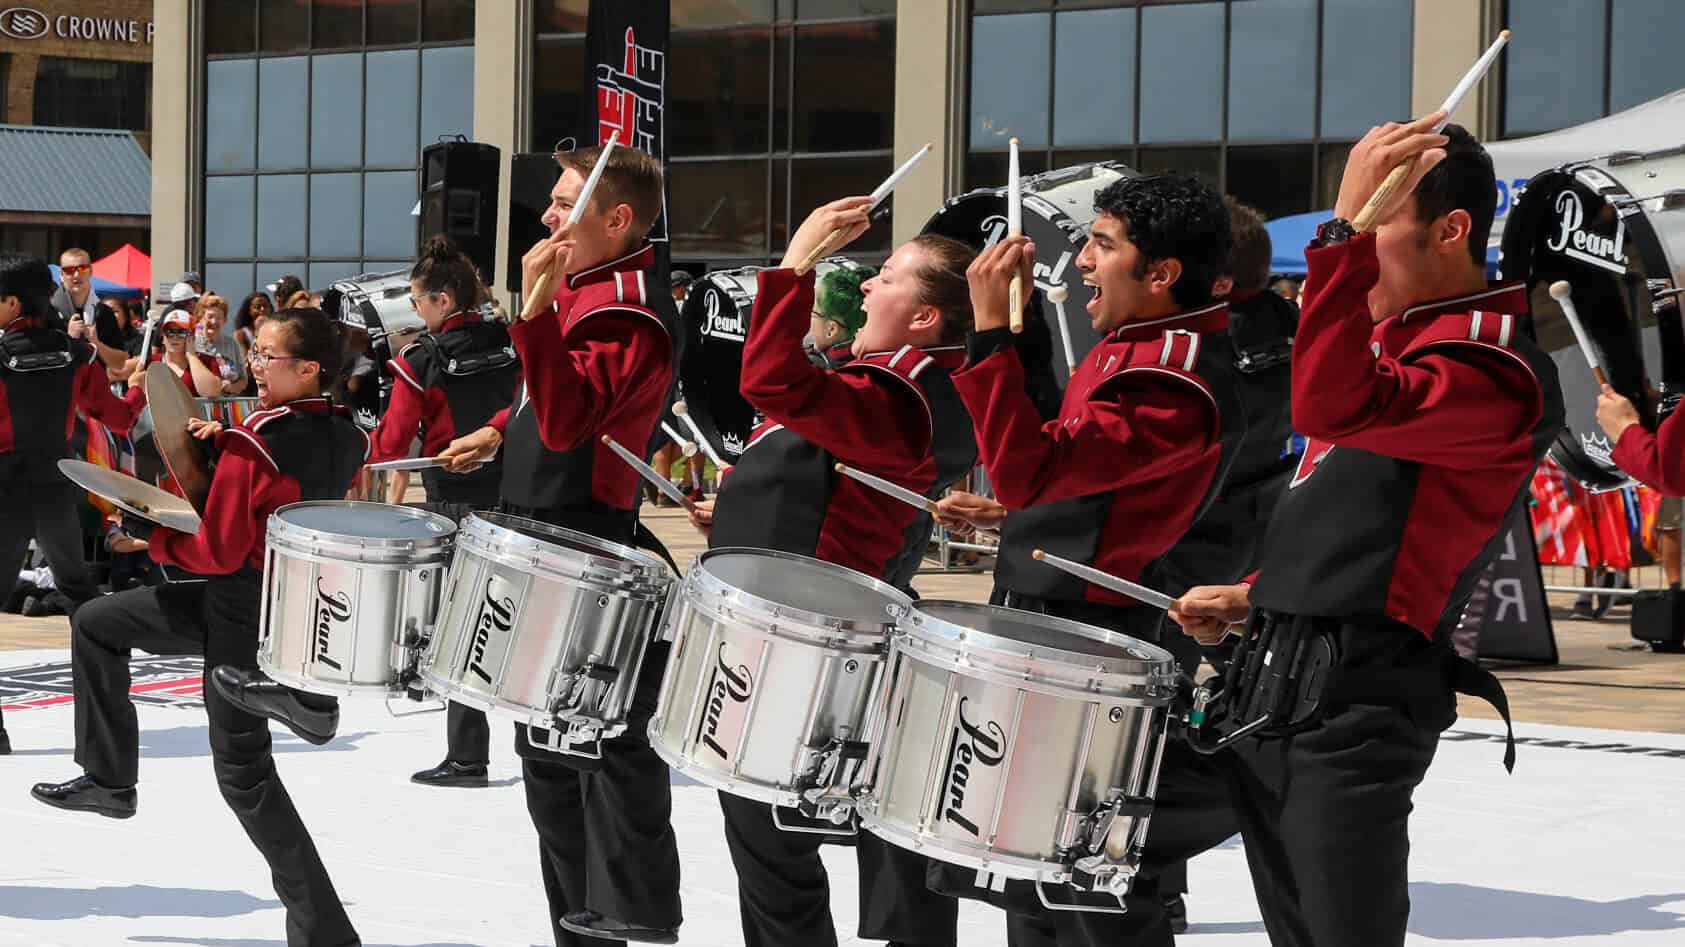 Marching band instruments percussion section.